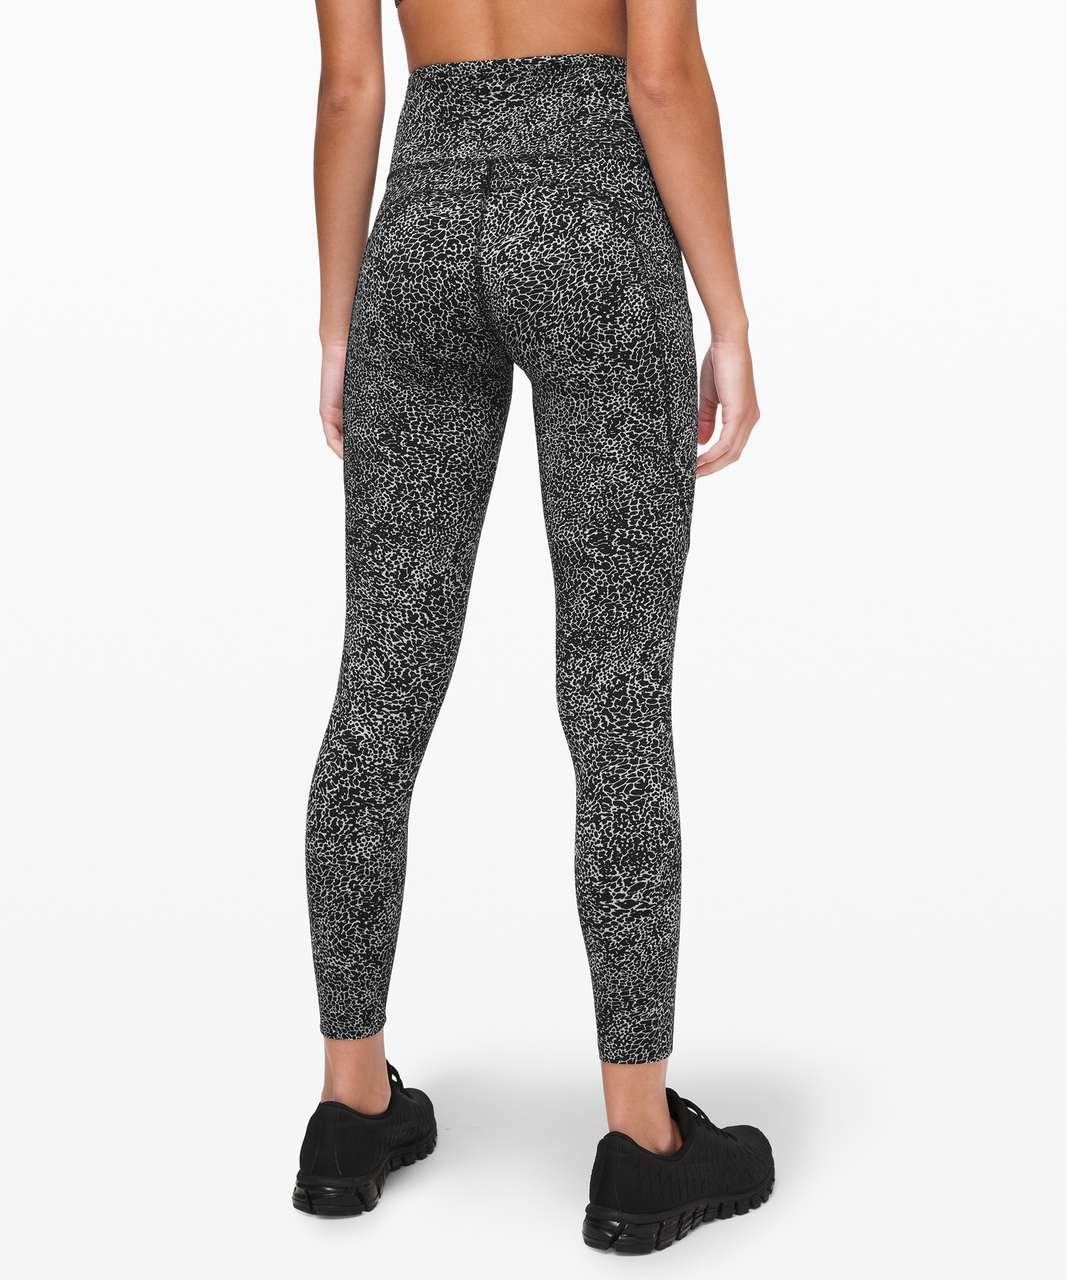 "Lululemon Fast and Free Tight II 25"" *Non-Reflective Nulux - Polar Shift Ice Grey Black"